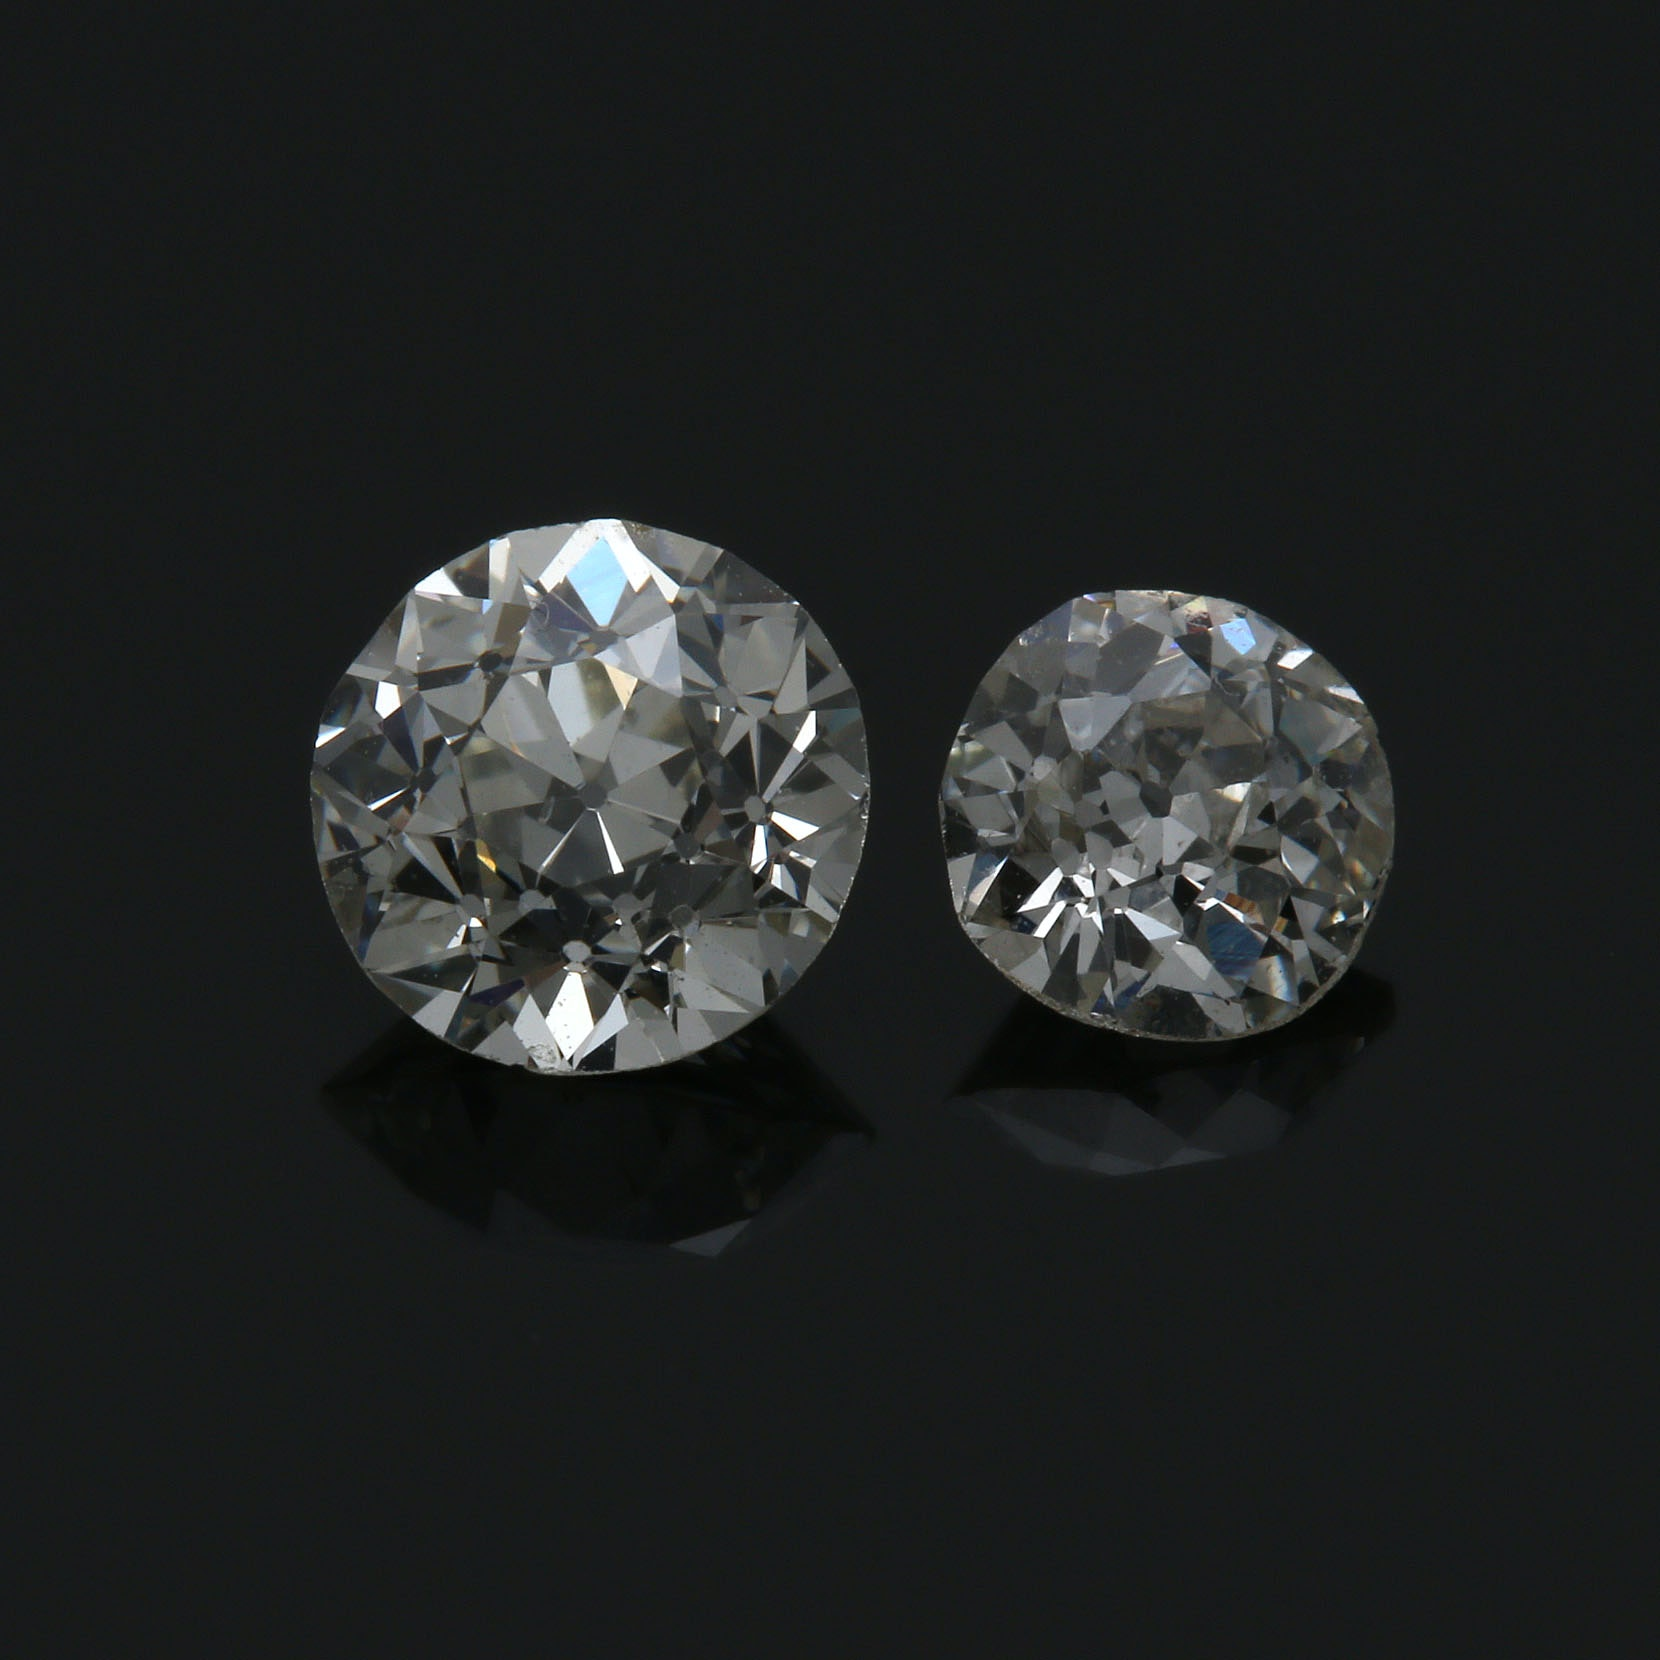 0.83 CTW Loose Diamonds